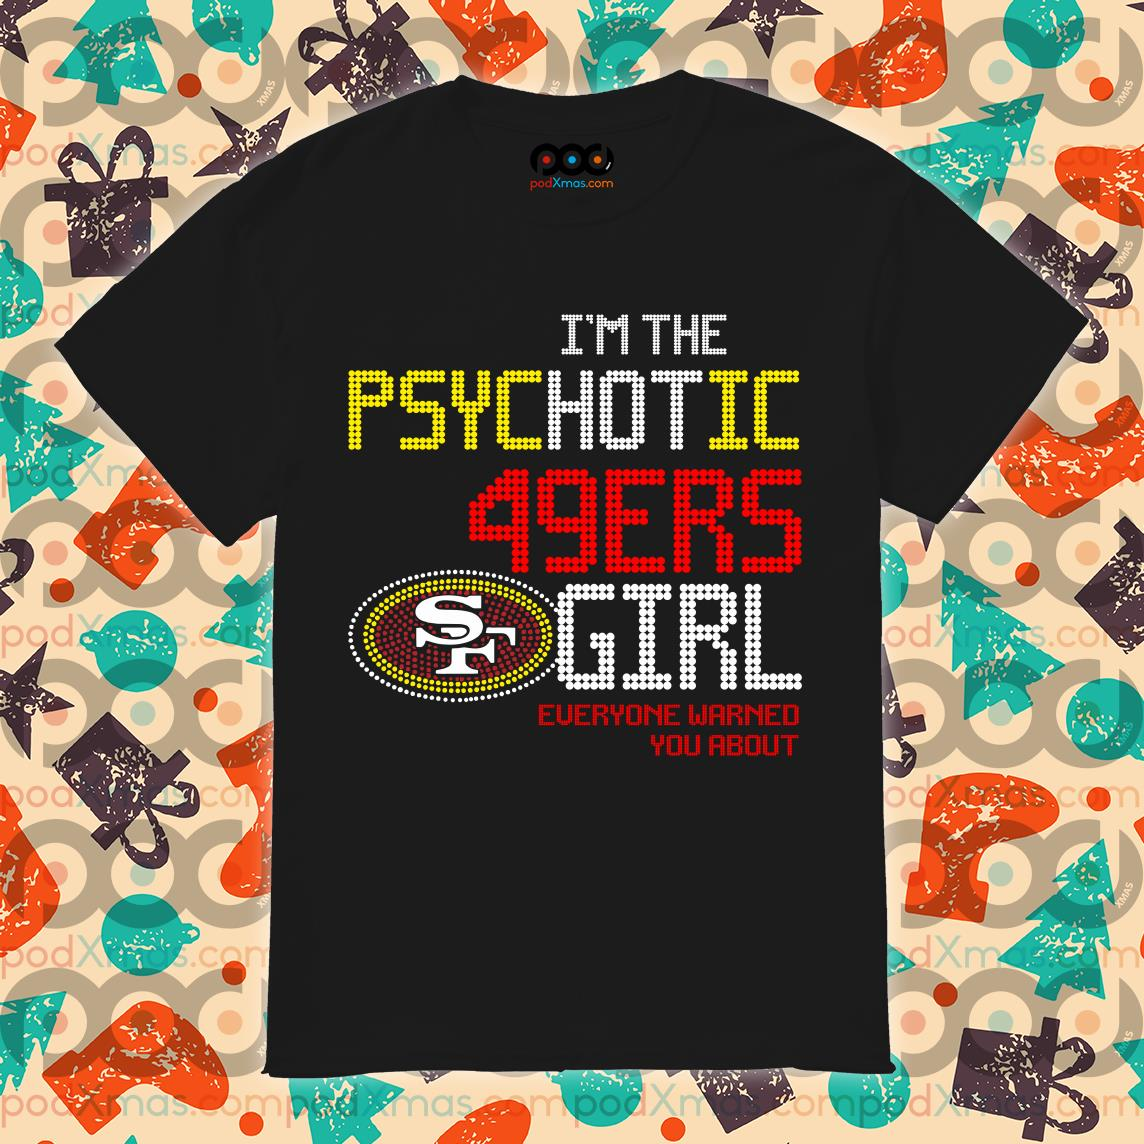 I'm the psychotic 49ers Girl everyone warned you about shirt